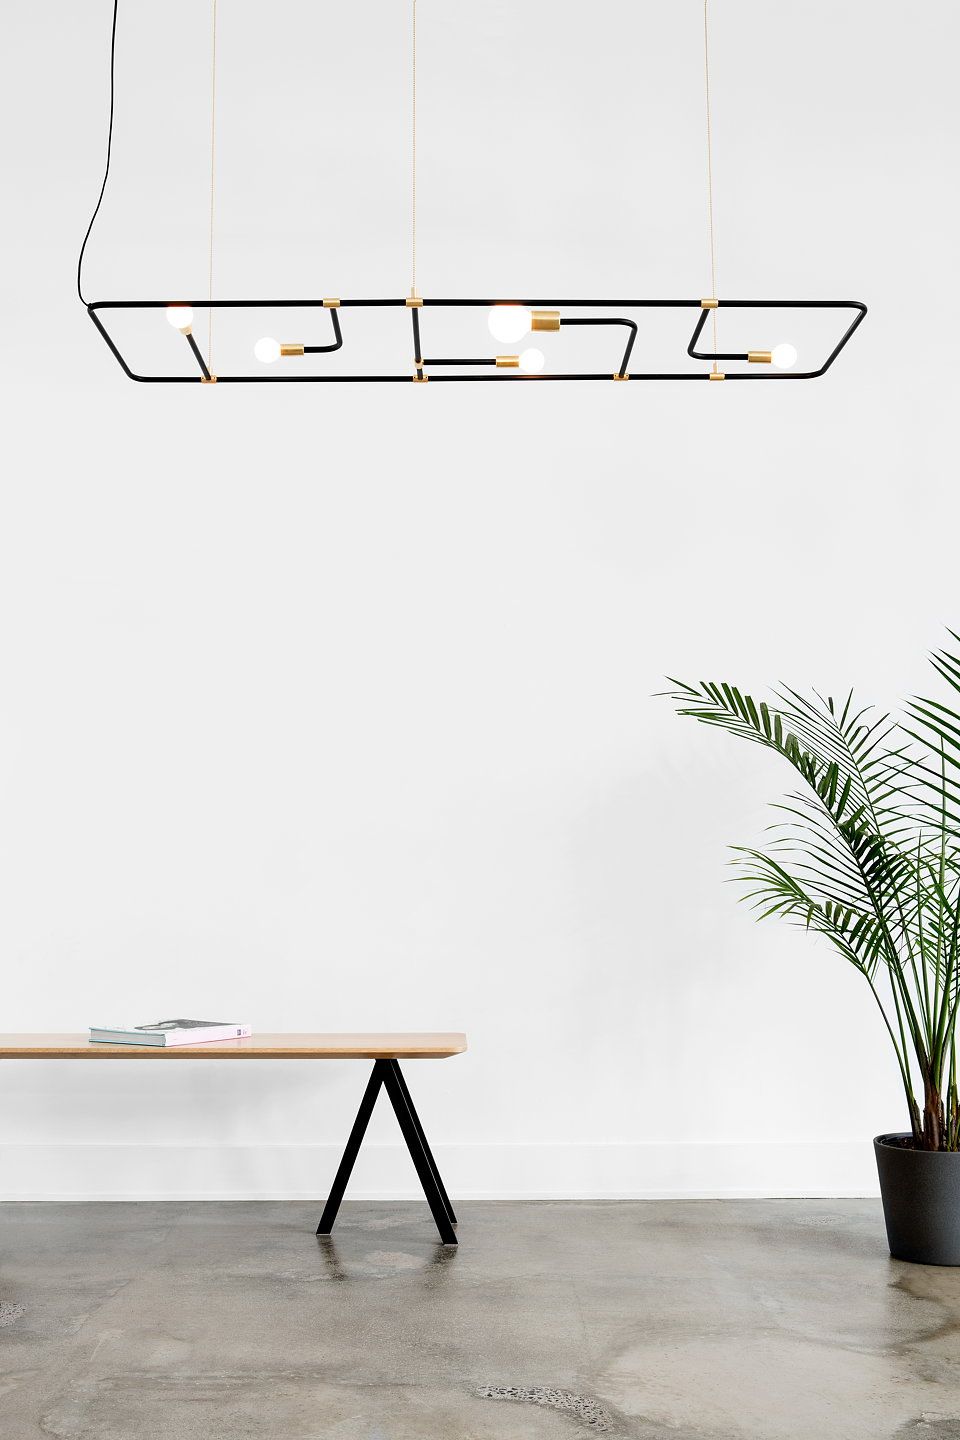 Lambert Fils Recently Unveiled Its New Lightning Fixture Beaubien Made Of Aluminum Powder Coated Steel And Brass The Is Situated In An